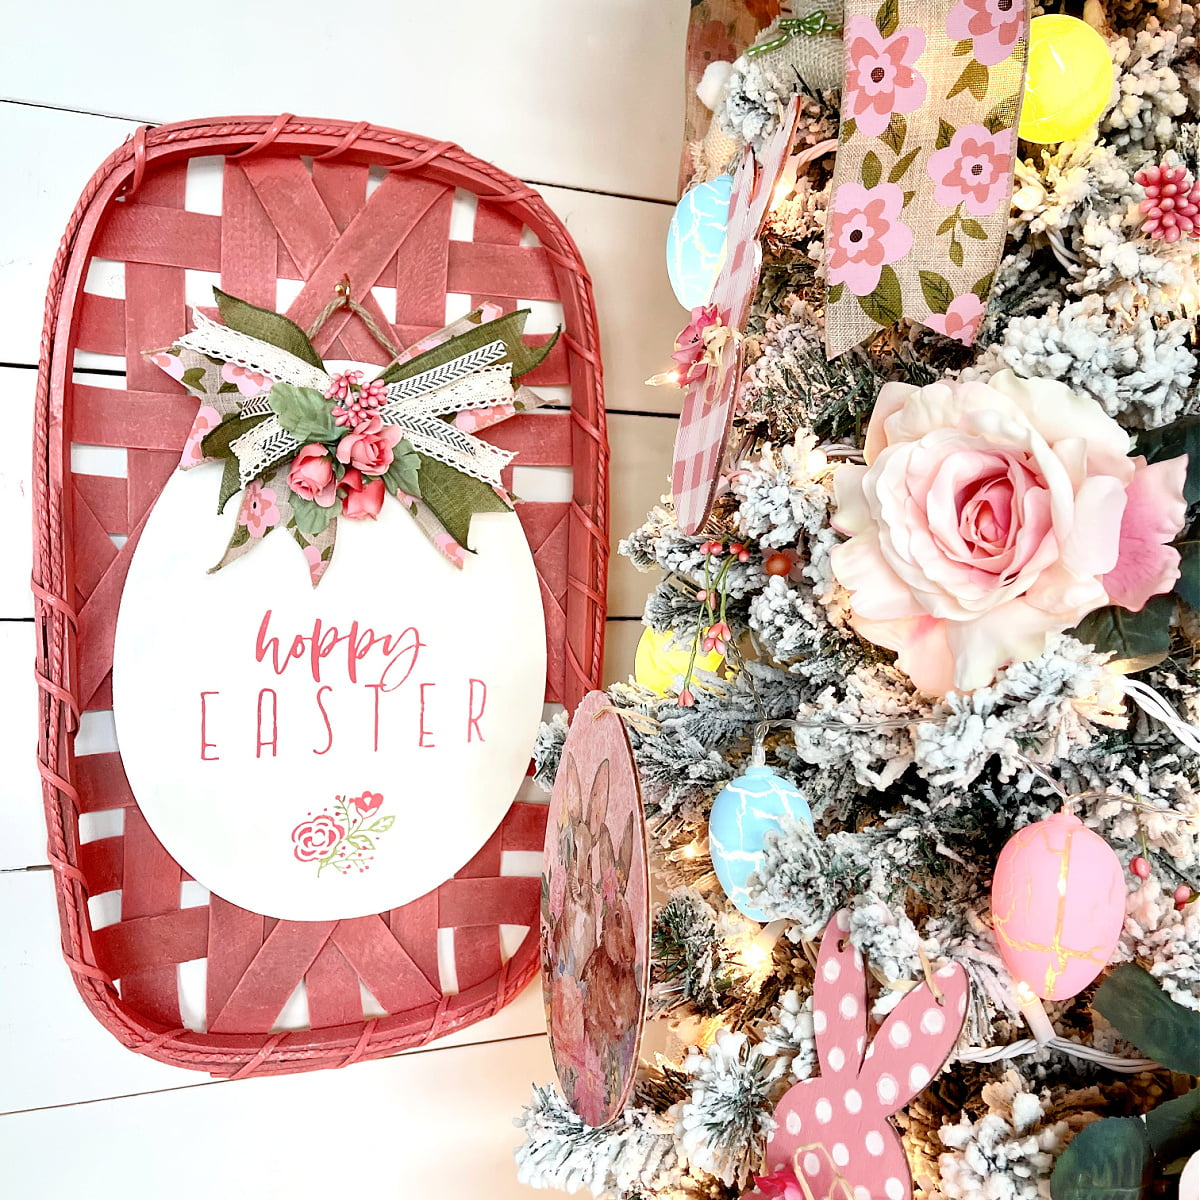 decorated Easter tree with a tobacco basket beside it